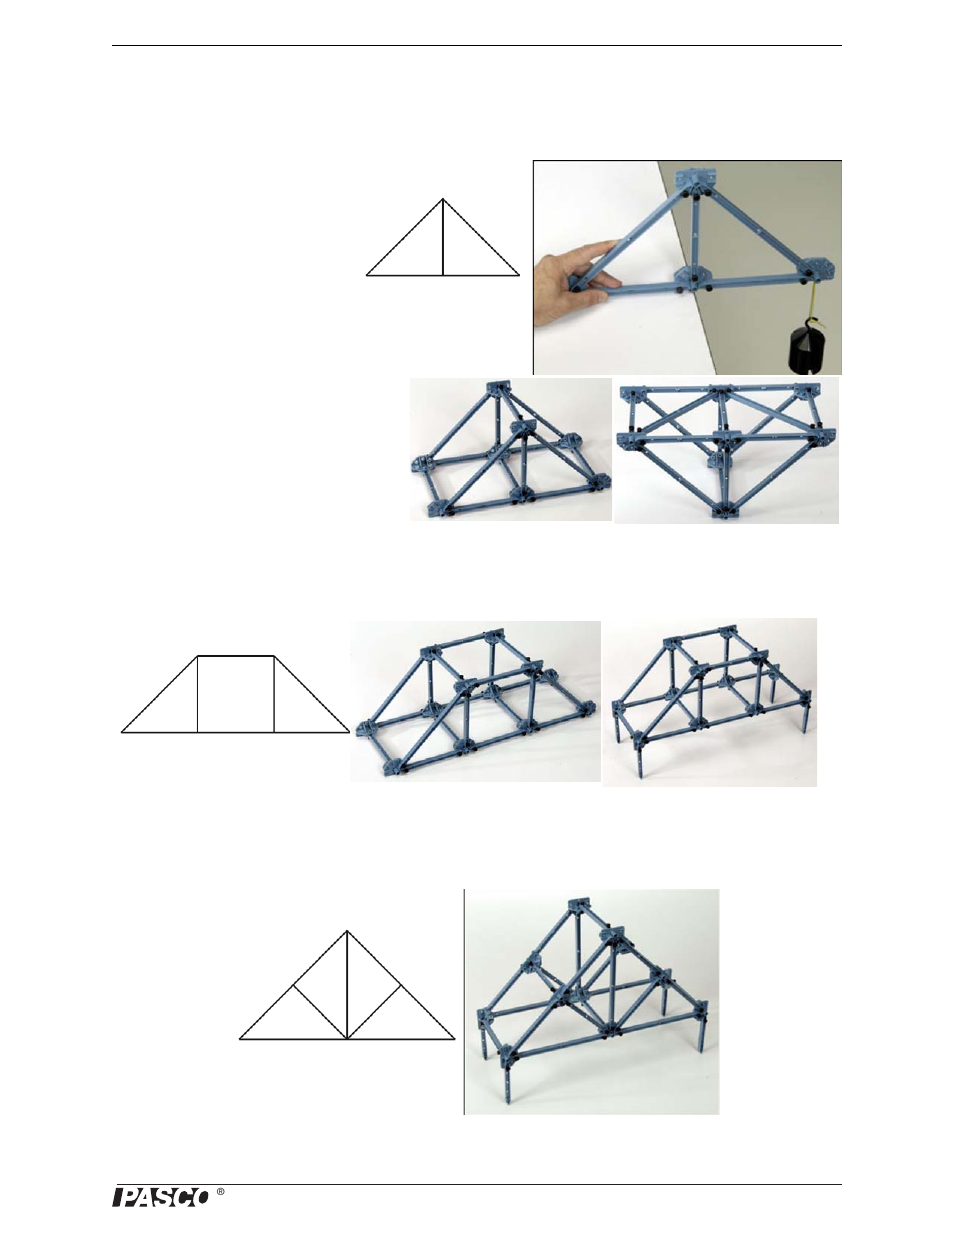 Trusses Kingpost Truss Queenpost Pasco Me 6992b Advanced Roof Diagram Structures Set User Manual Page 11 58